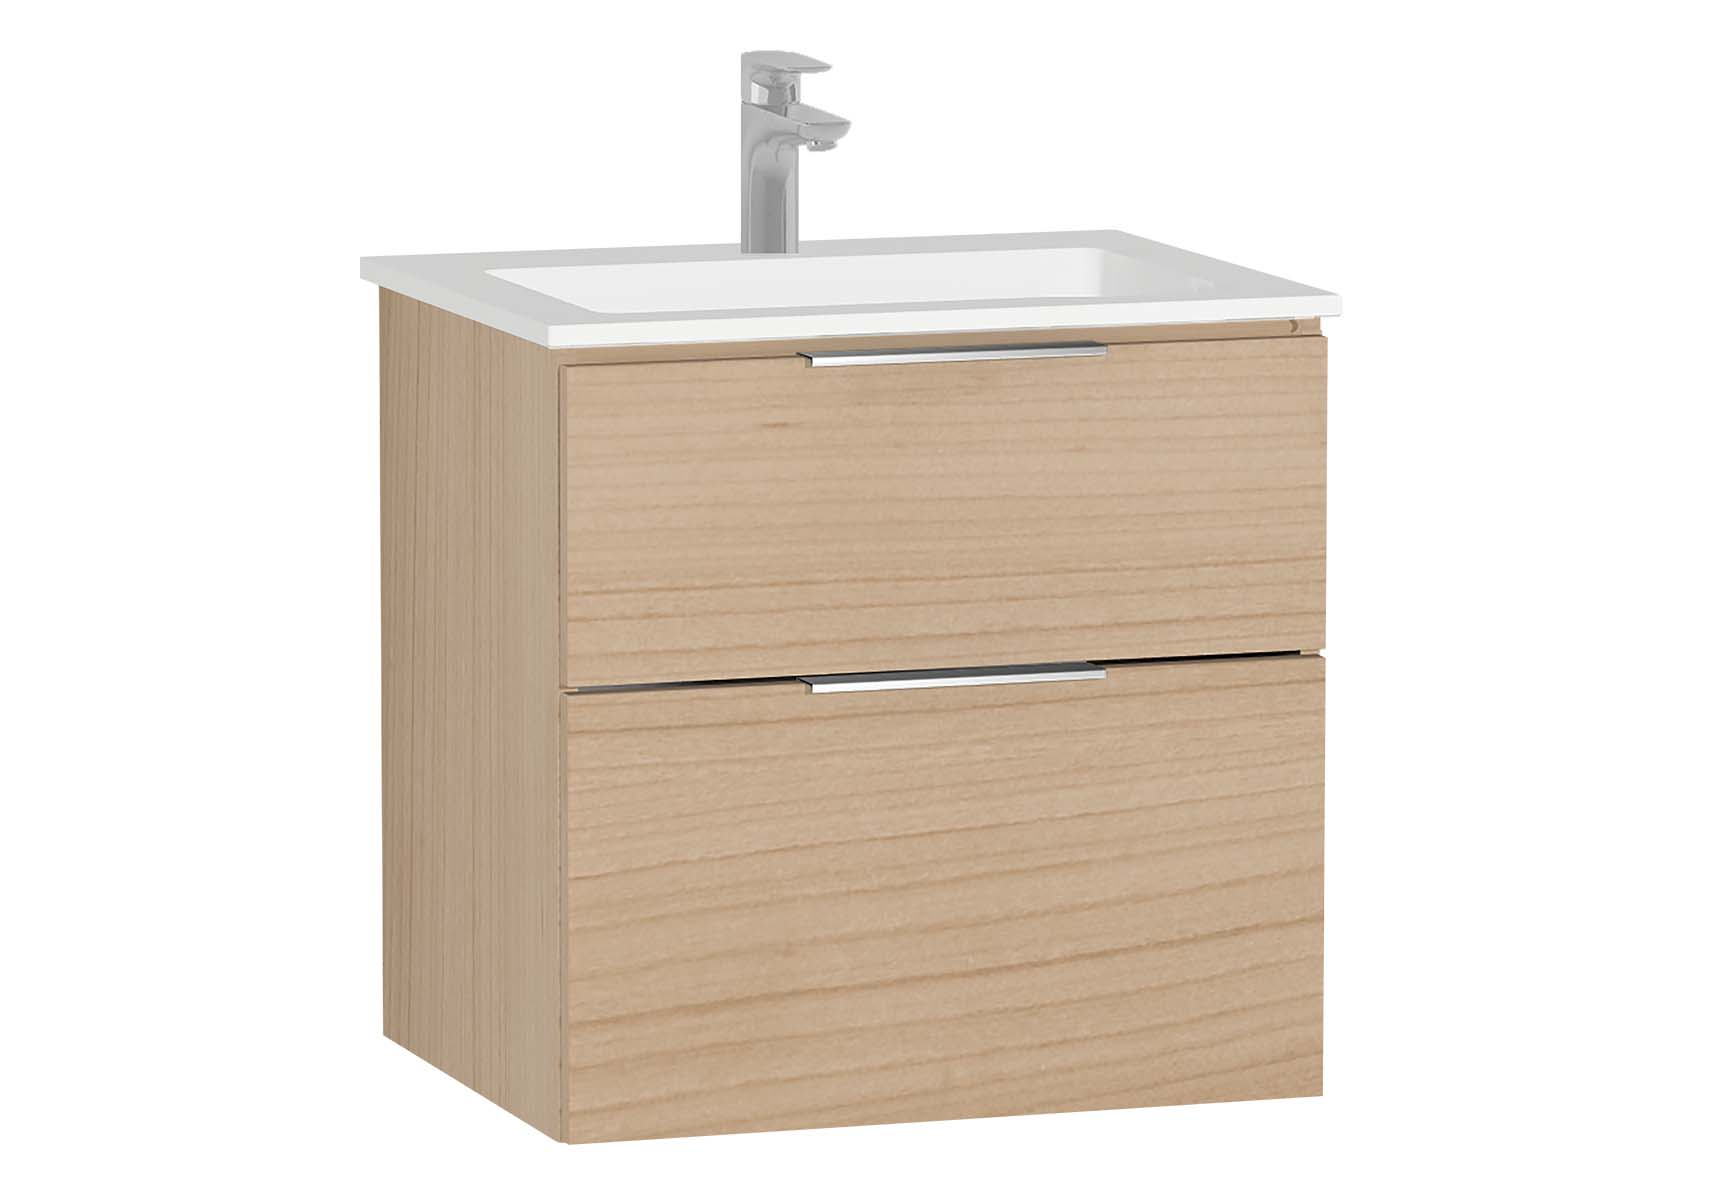 Central Washbasin Unit with 2 drawers, 60 cm, Golden Cherry, Infinit Washbasin